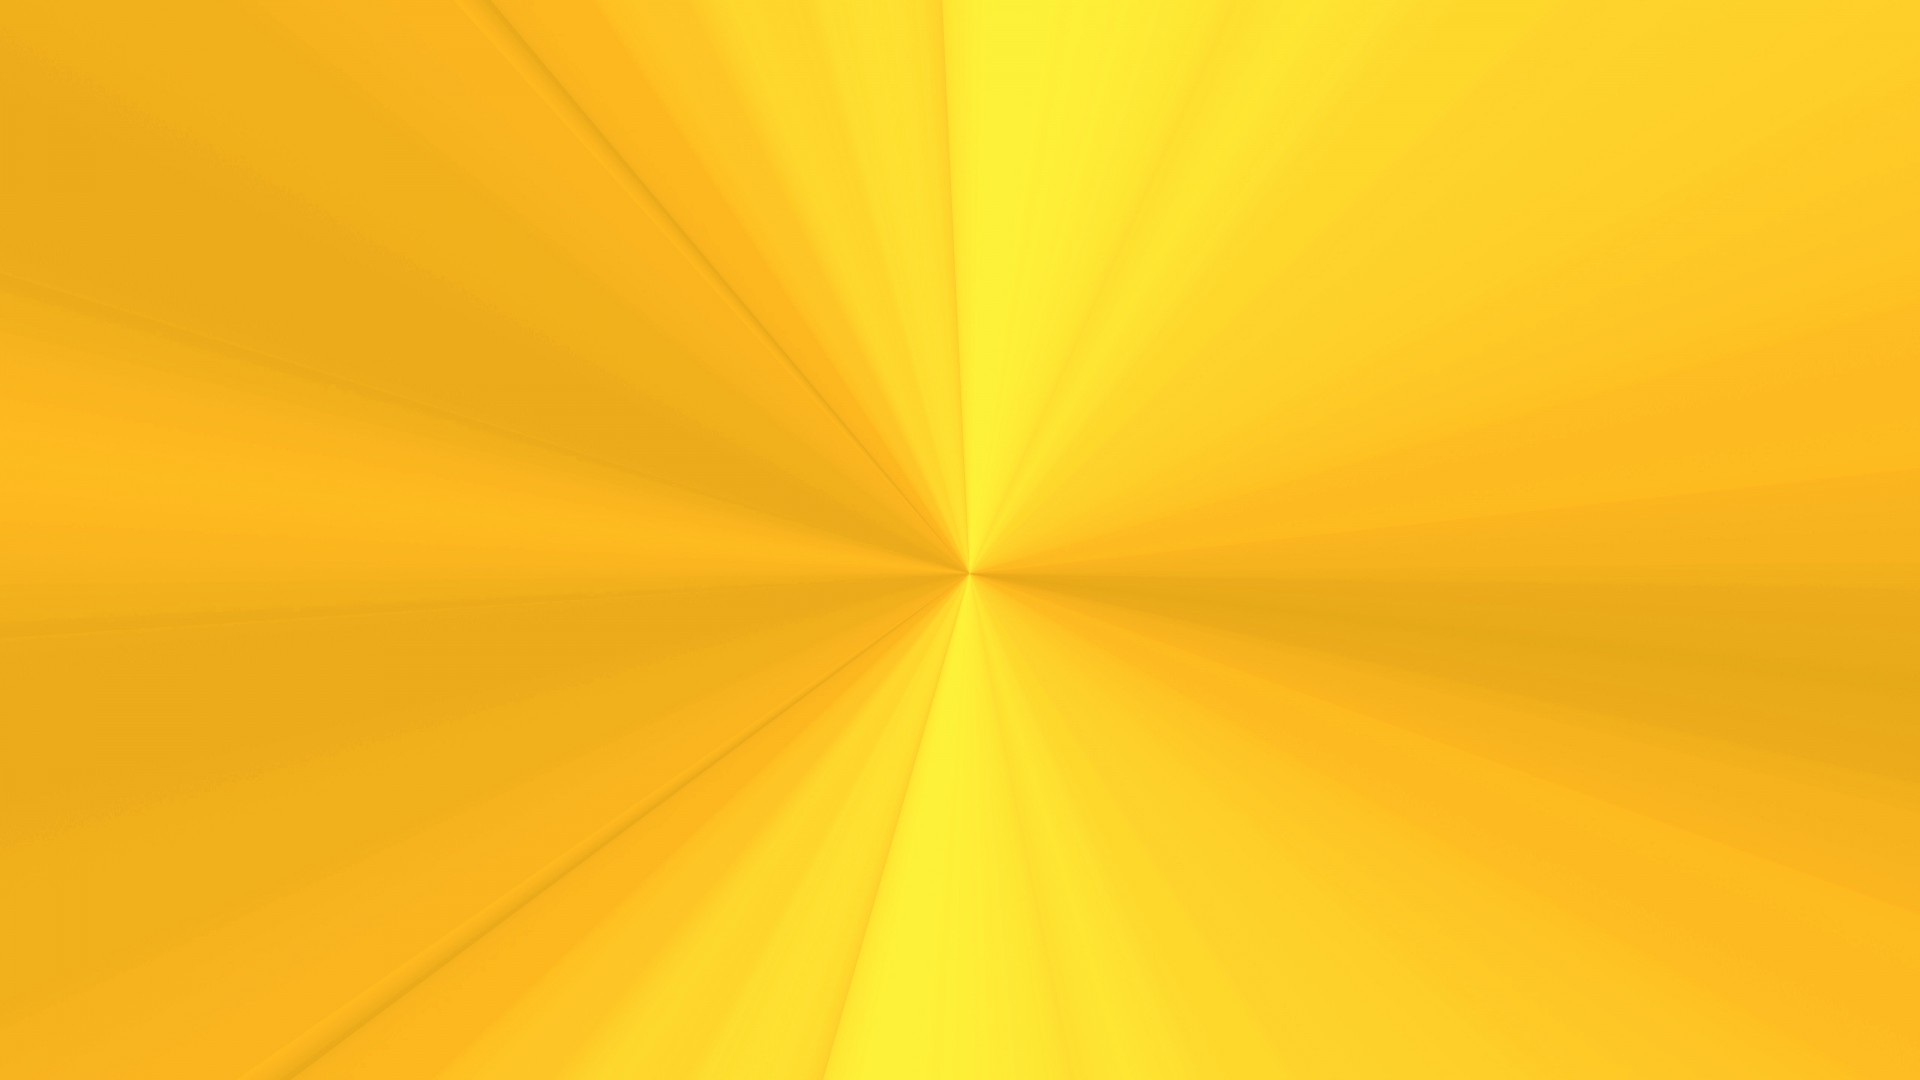 yellow-point-background.